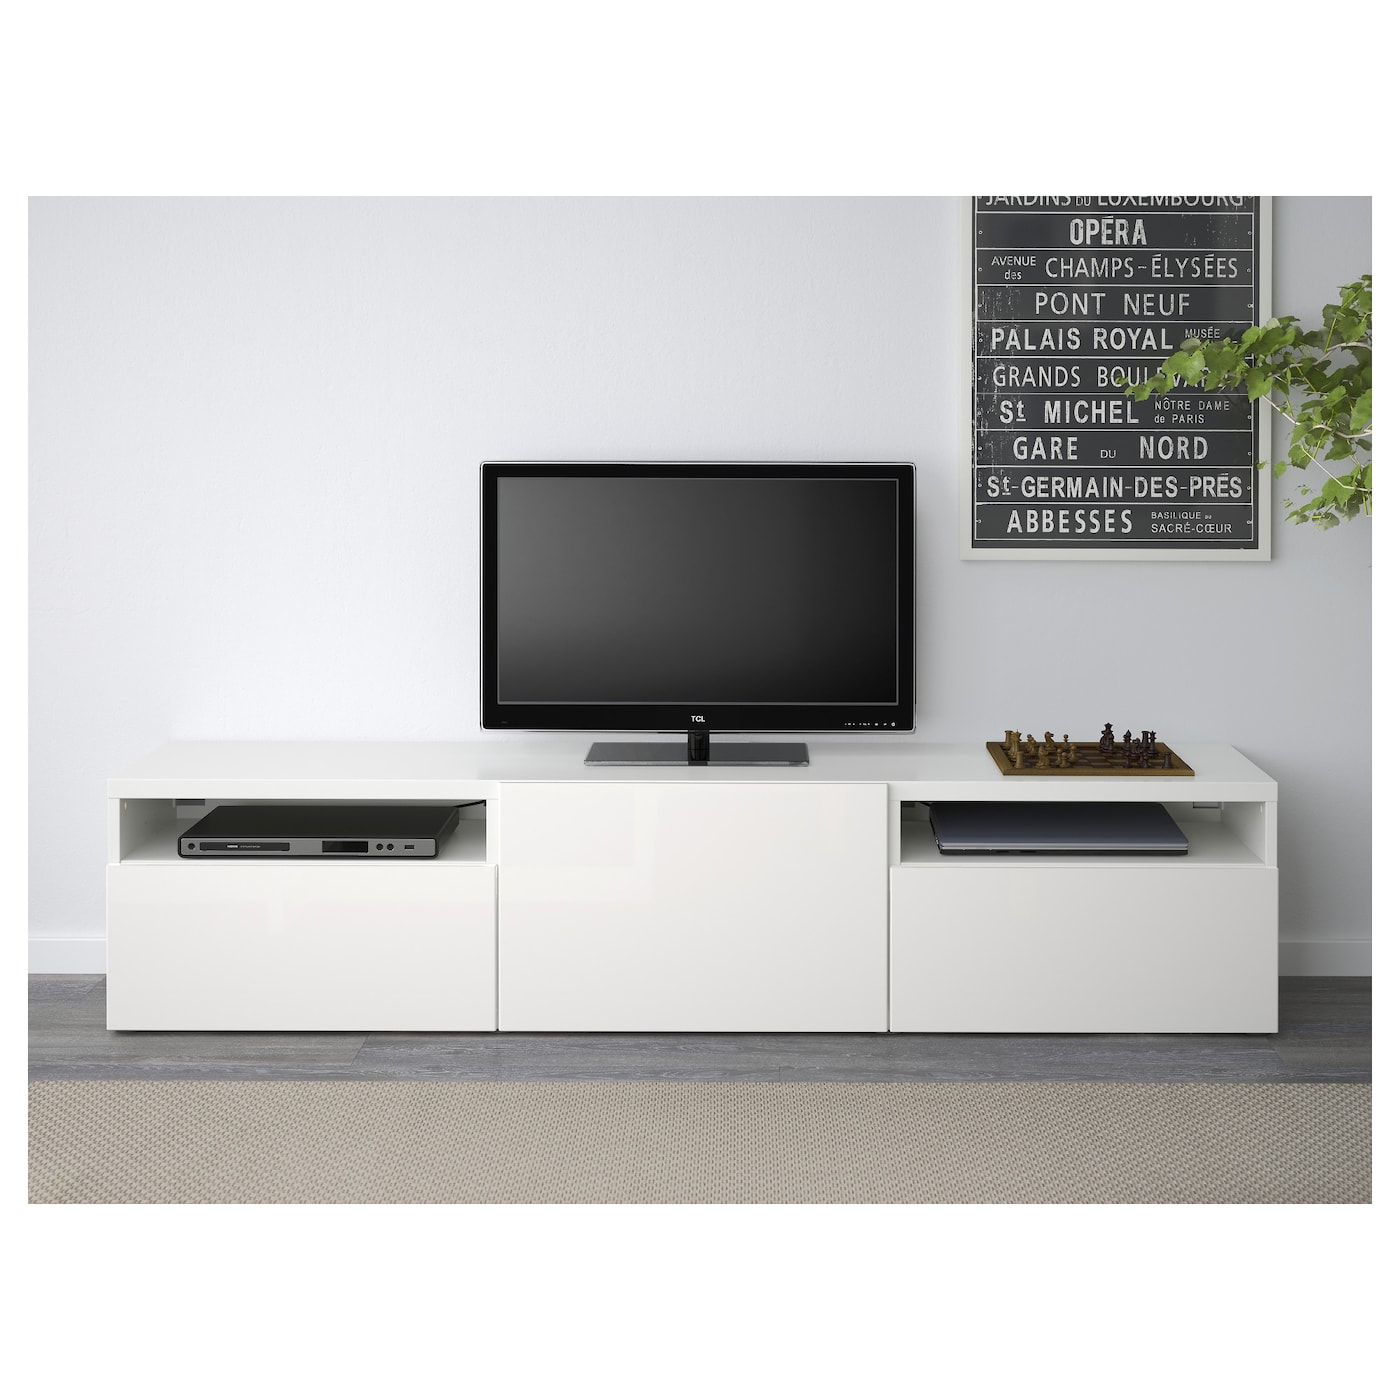 ikea besta tv stand BESTÅ TV bench White/selsviken high gloss/white 180 x 40 x 38 cm  ikea besta tv stand